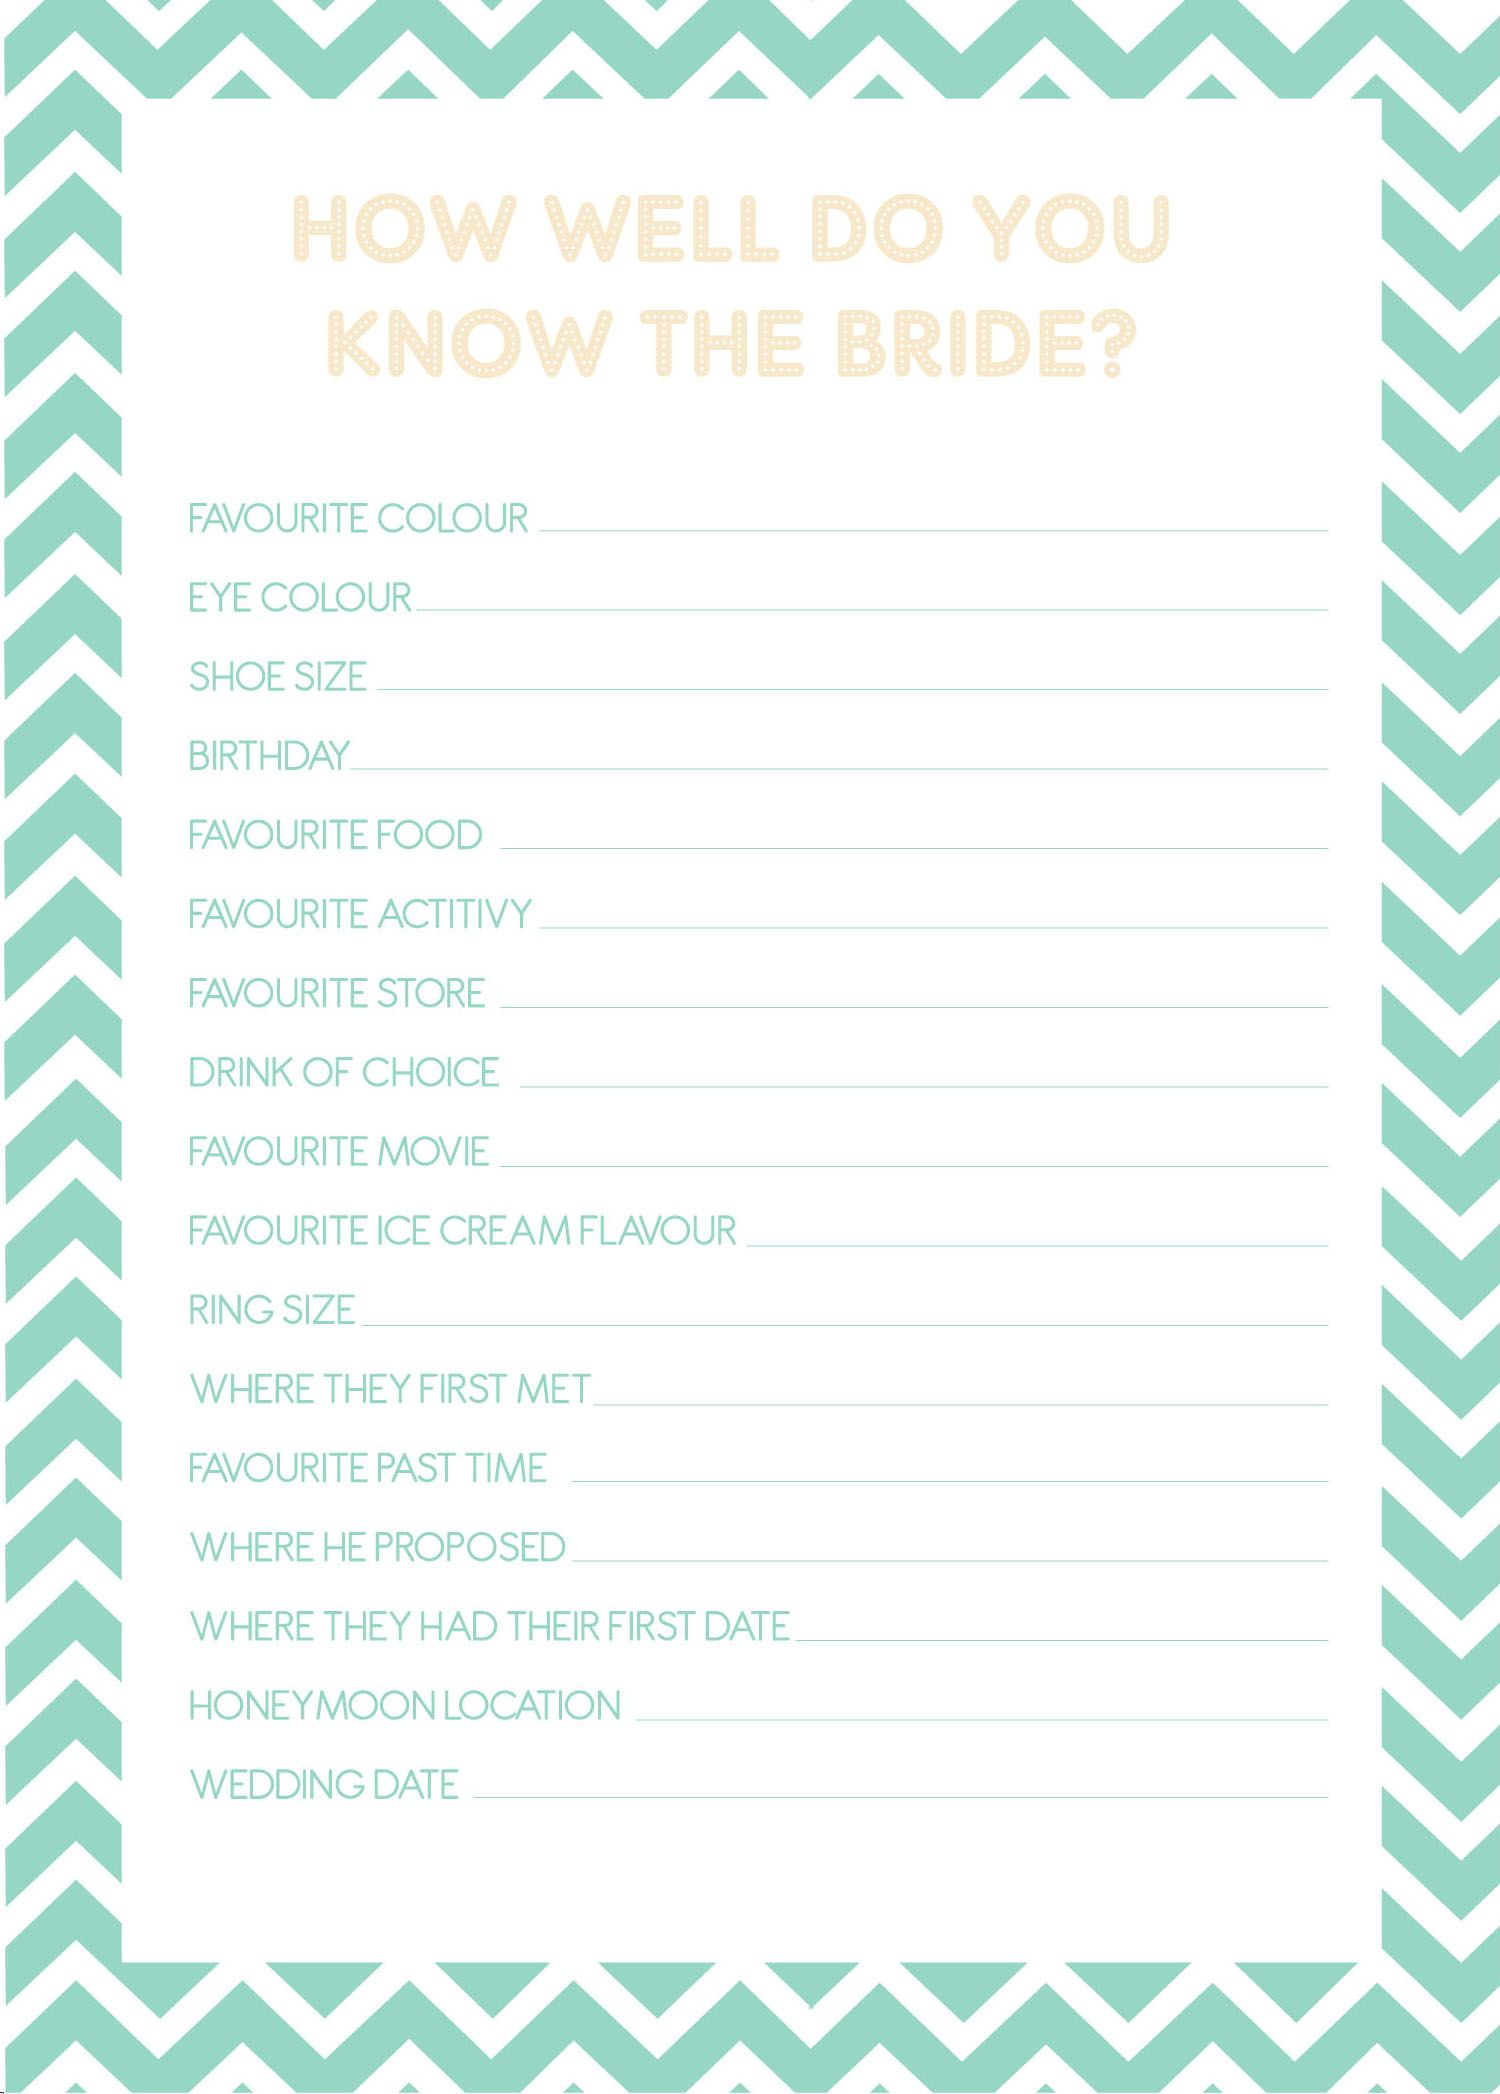 How Well Do You Know The Bride Digital Cards On Etsy This Game Is A Fun And Interactive Way For Guests To Get Or Earn Bragging Rights